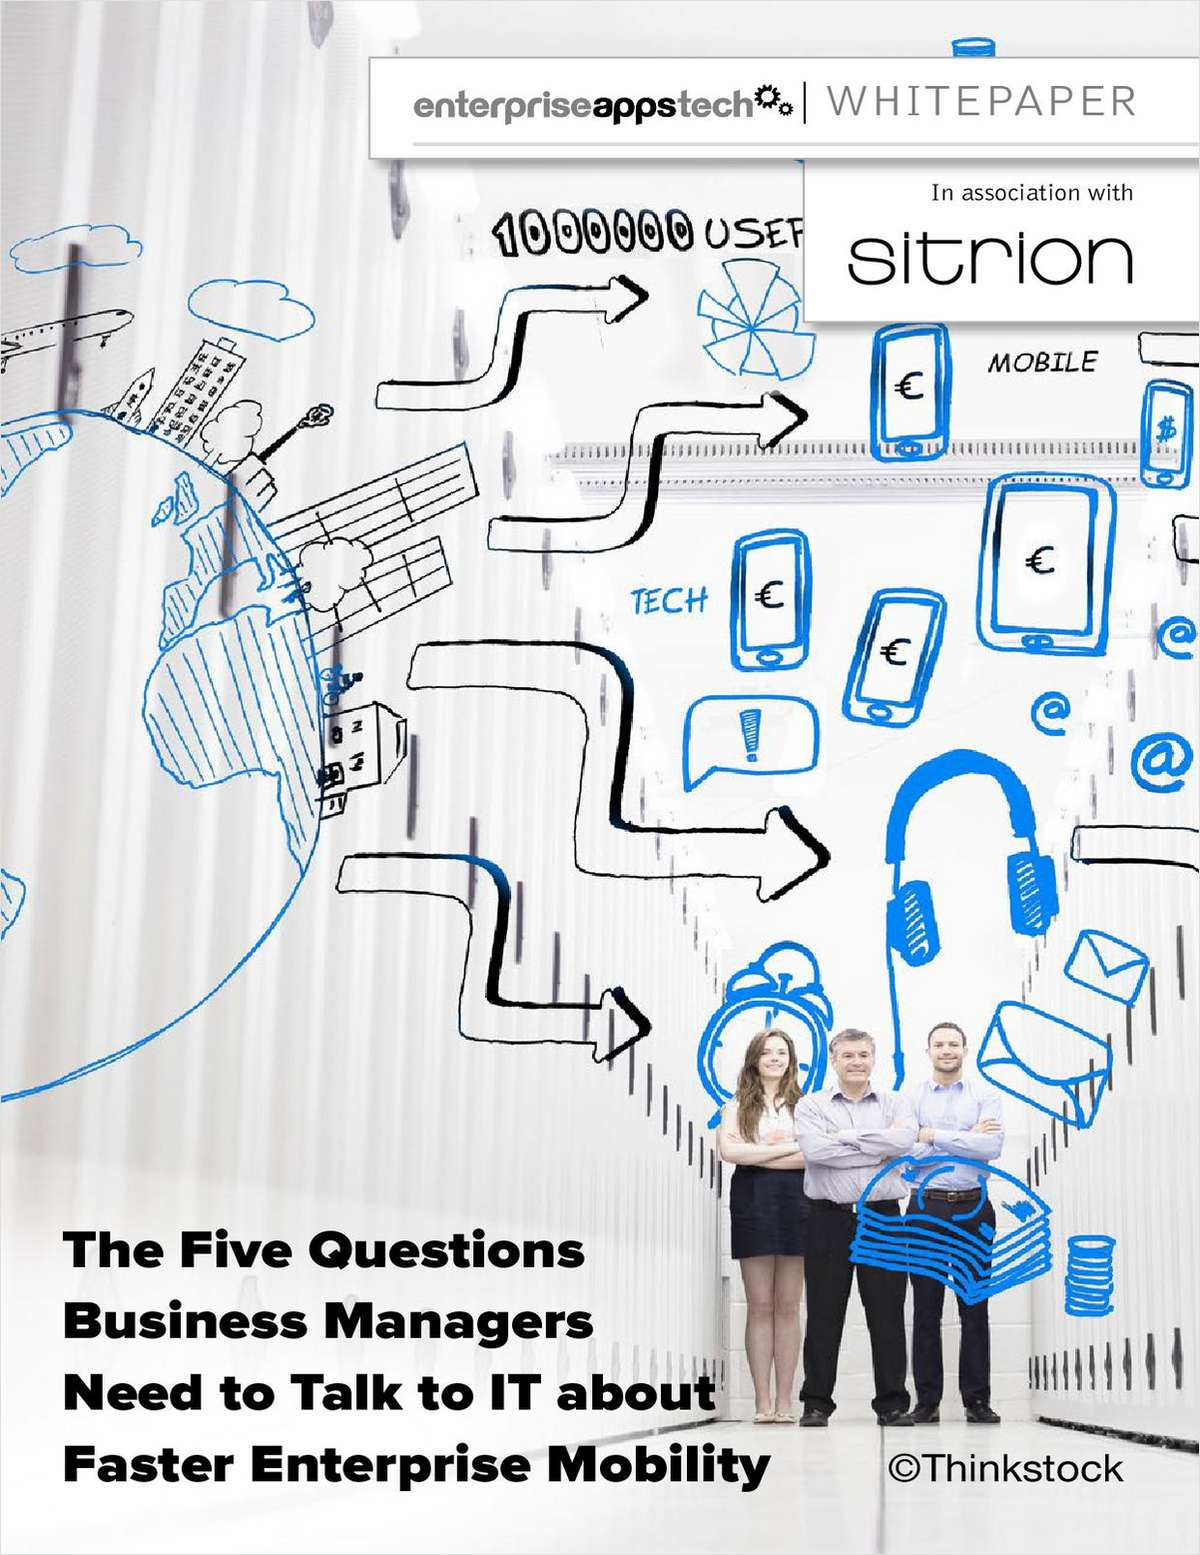 The Five Questions Business Managers Need to Talk to IT about Faster Enterprise Mobility